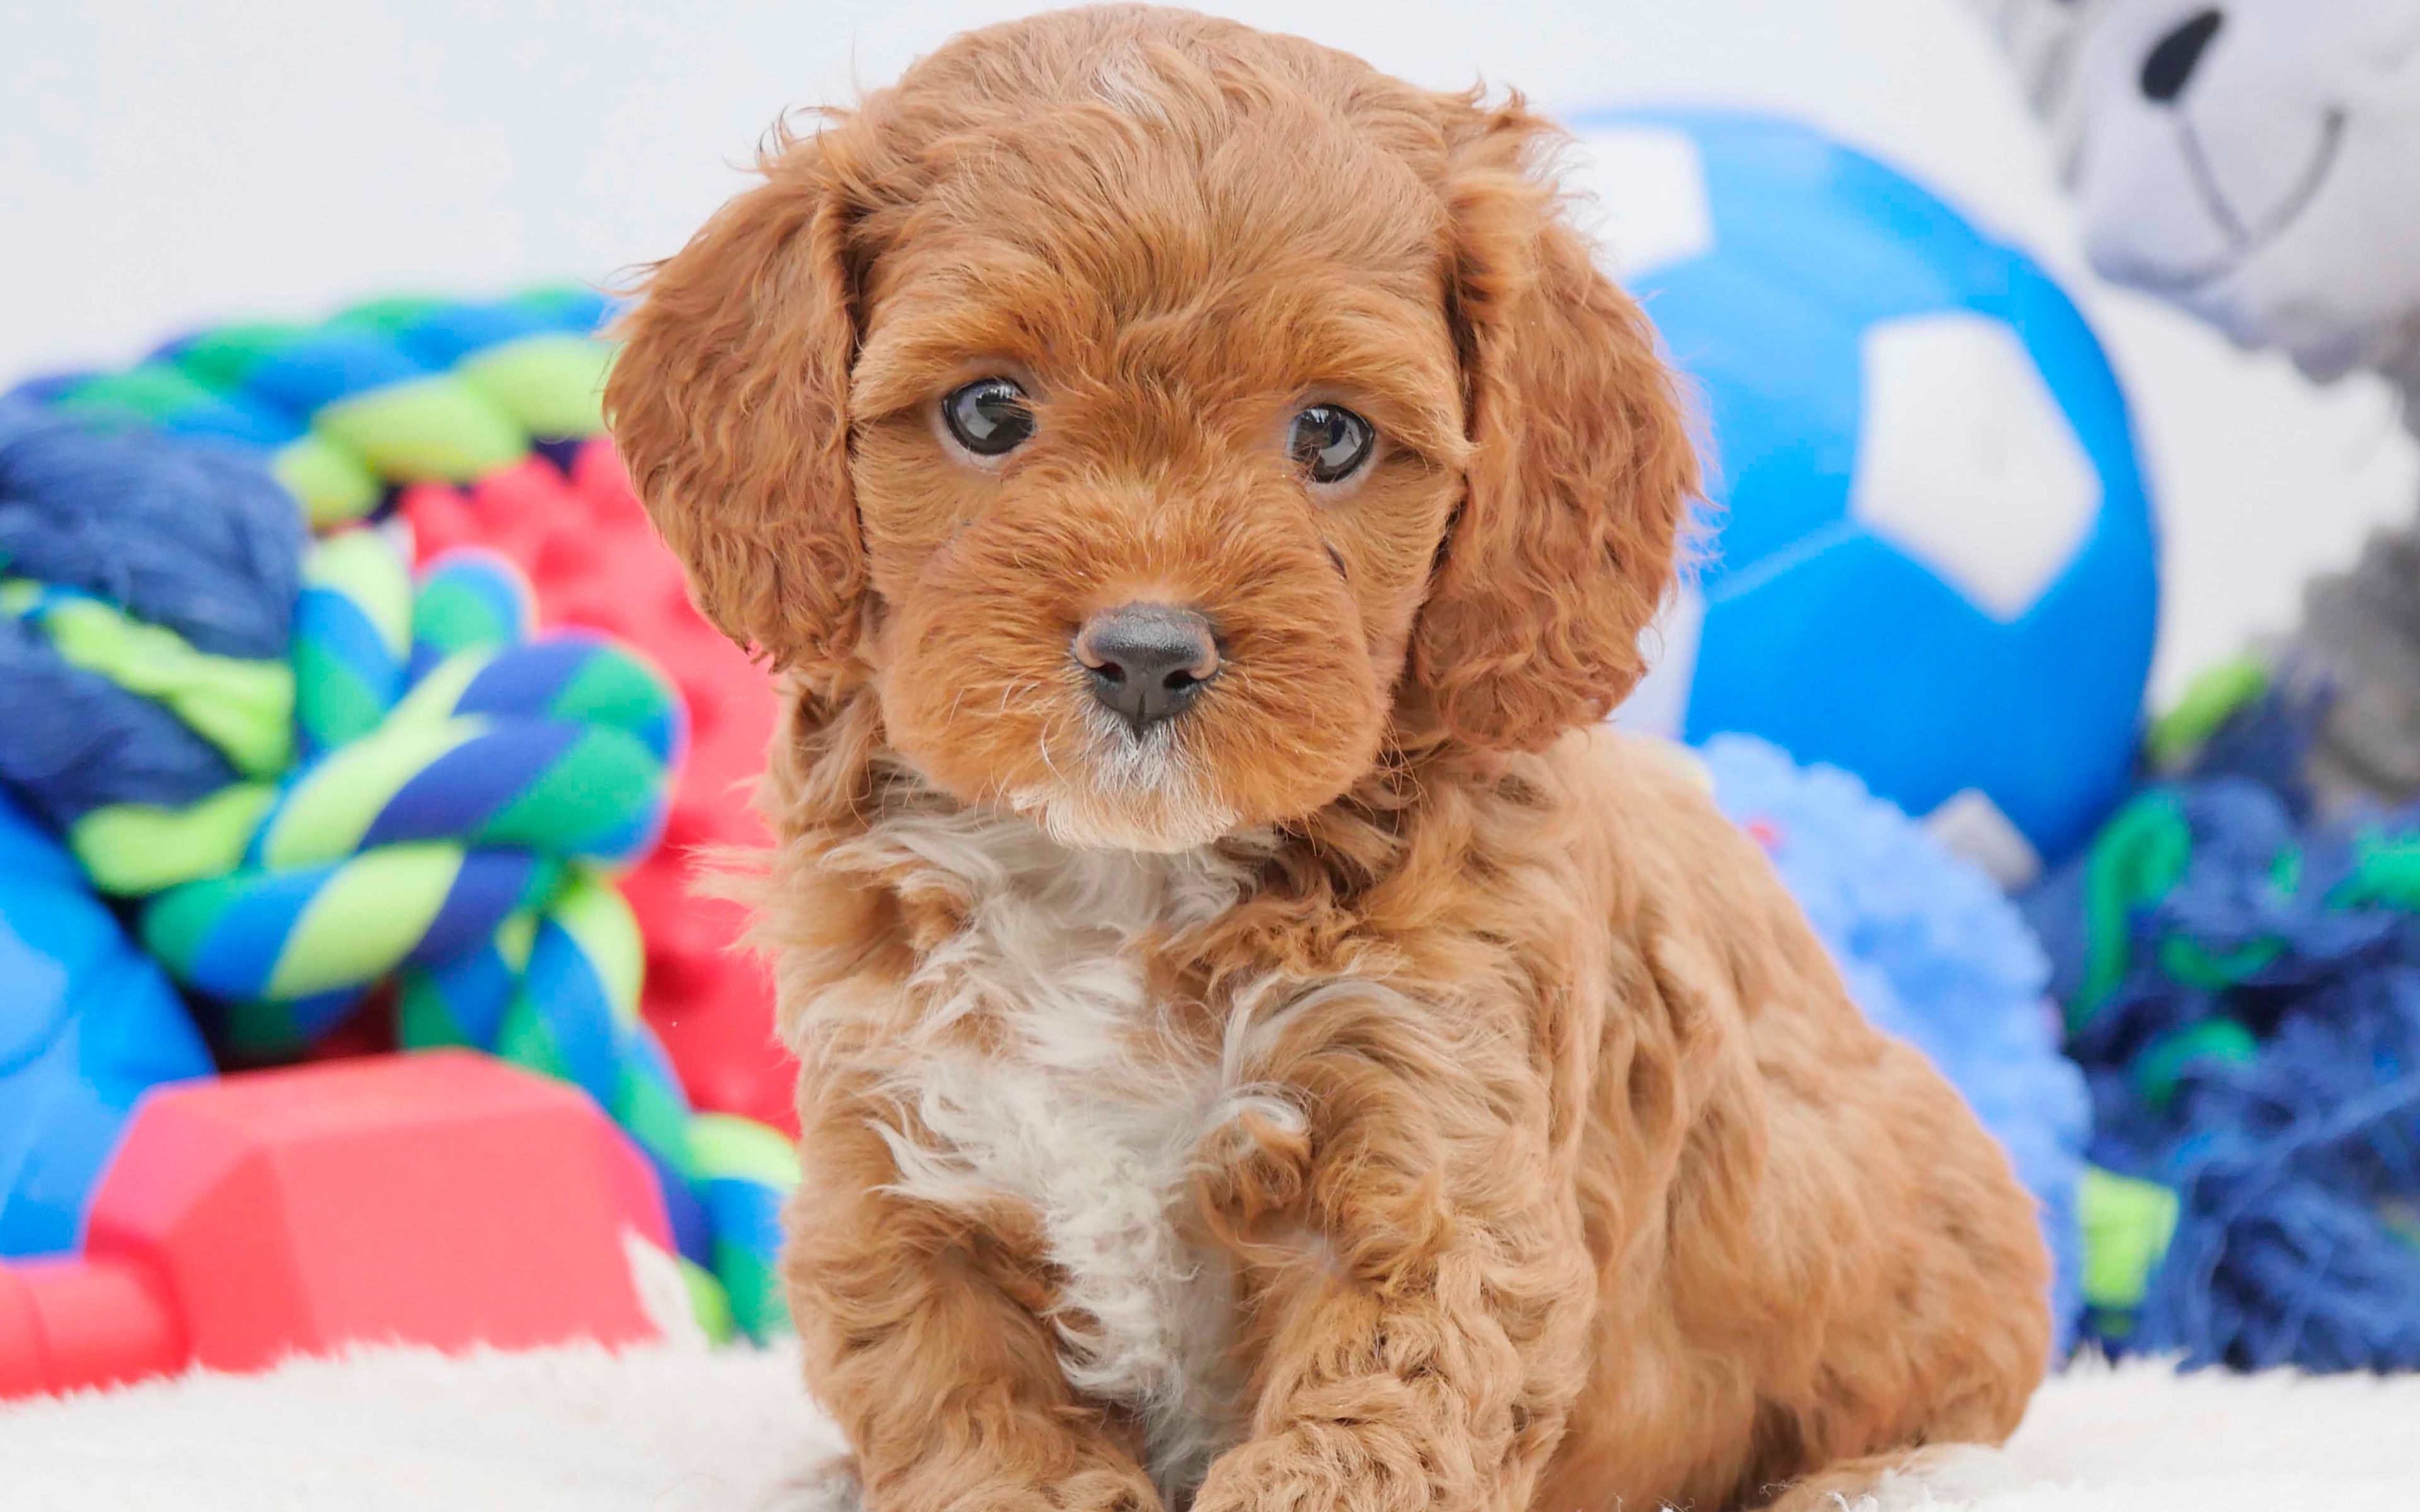 Best Quality Puppy Food Optimum Grain Free Pet Food Reviews Australia How Often How Much To Feed Meisterhunde Rottweile In 2020 Brown Puppies Cute Animals Small Dogs